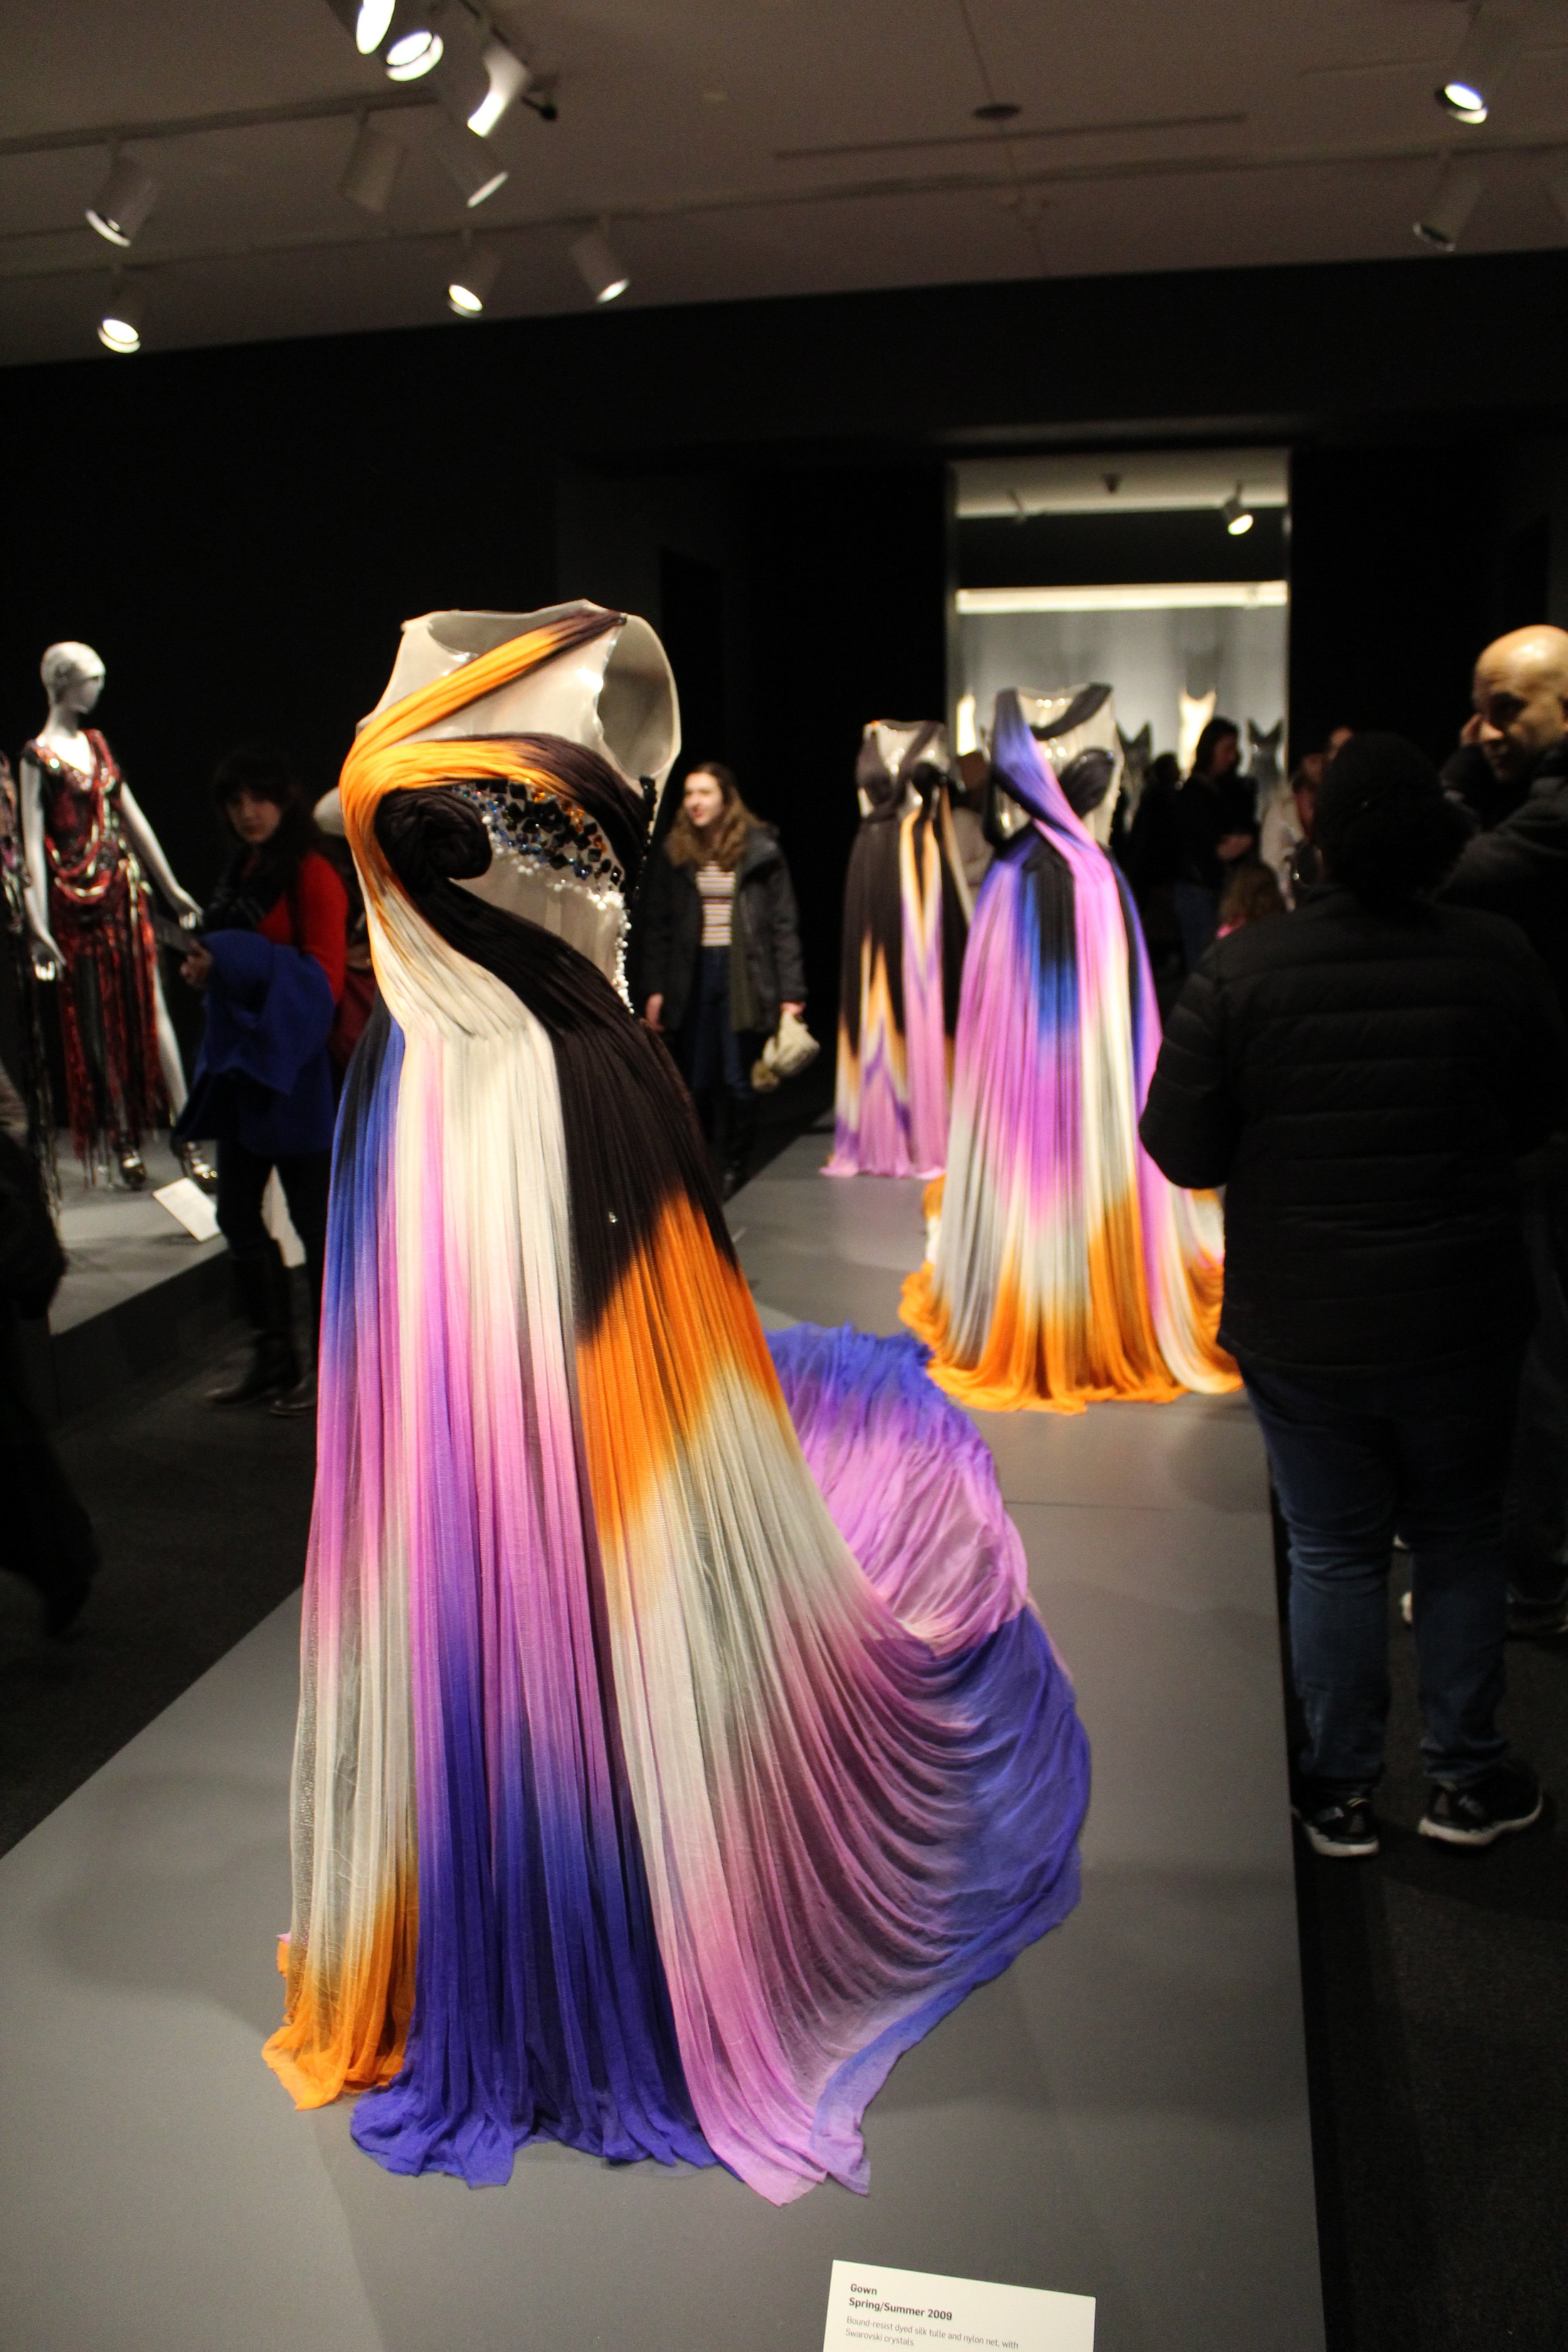 I enjoy the tie-dyed effect of the dress along with the impeccable detail to the front of the dress. Additionally, I'm always a fan of one shouldered dresses.